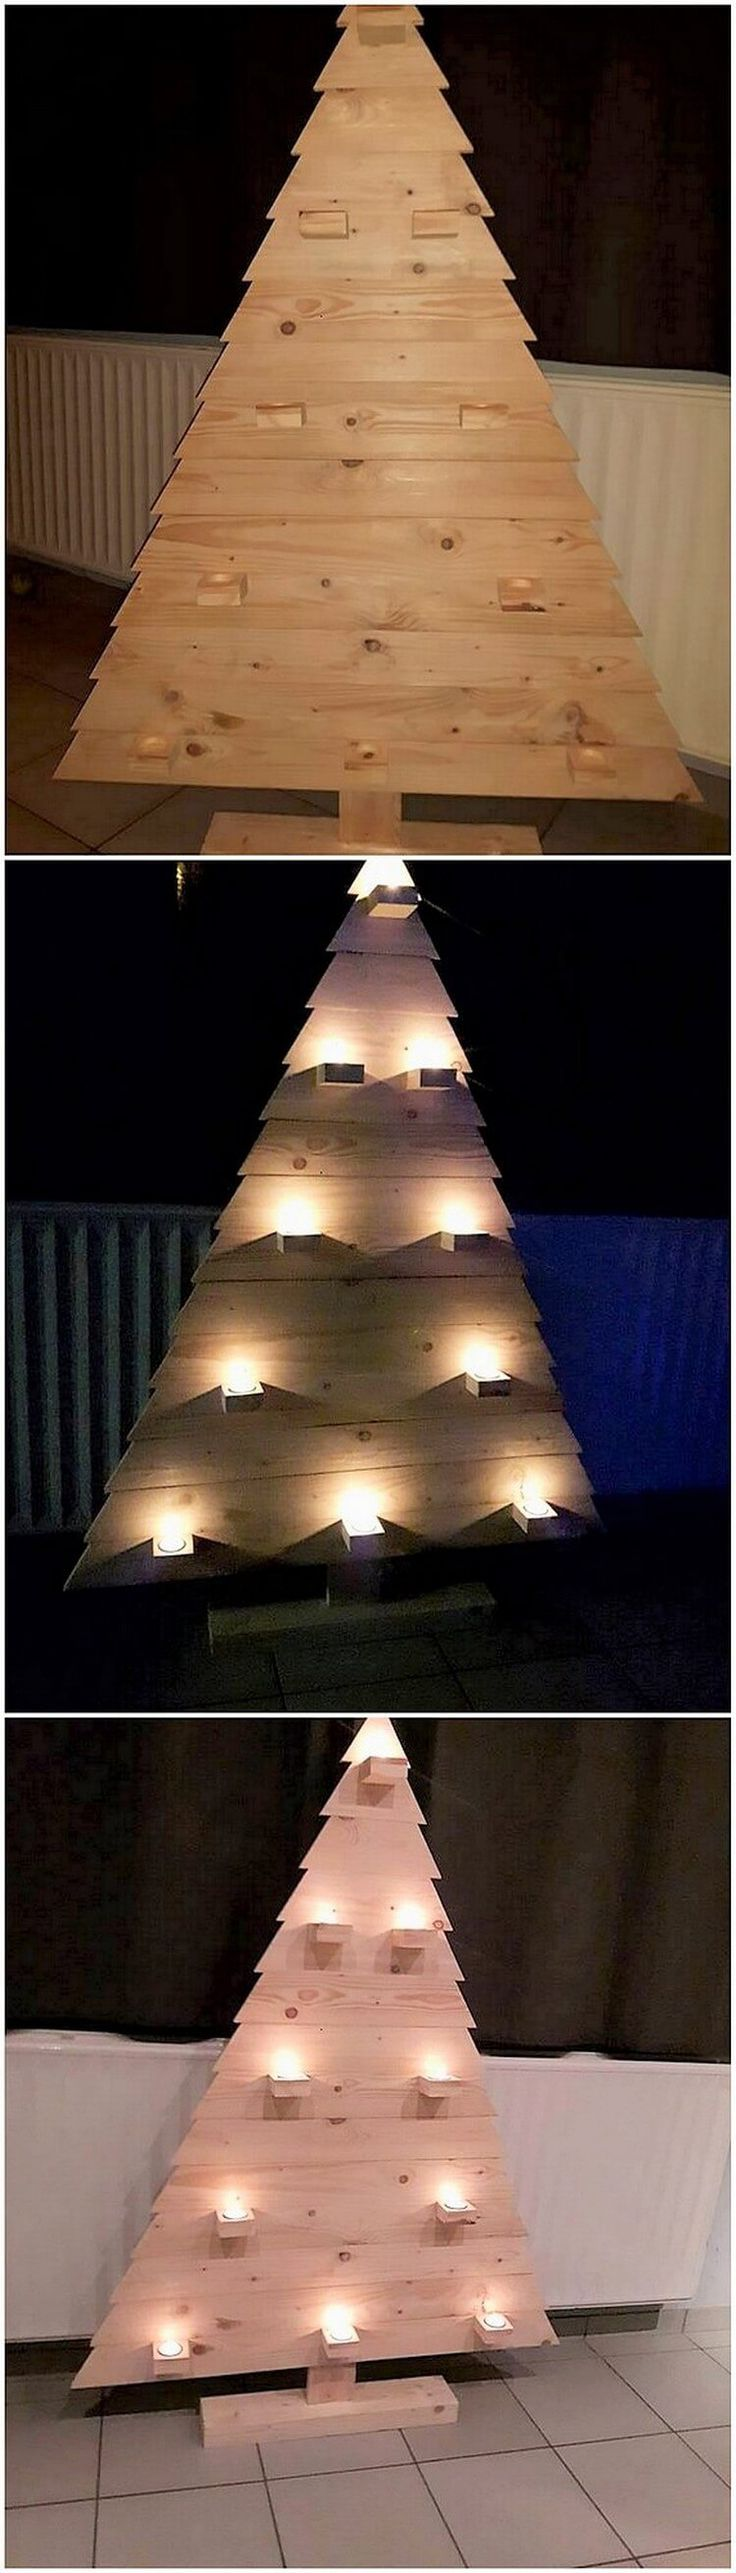 Covering up with some more interesting wood pallet ideas, let's introduce you with the awesome pallet Christmas tree design where the involvement of the lightning effect has been arranged with the awesome formation work. Rustic use of the wood pallet inside it makes it look so wonderful.